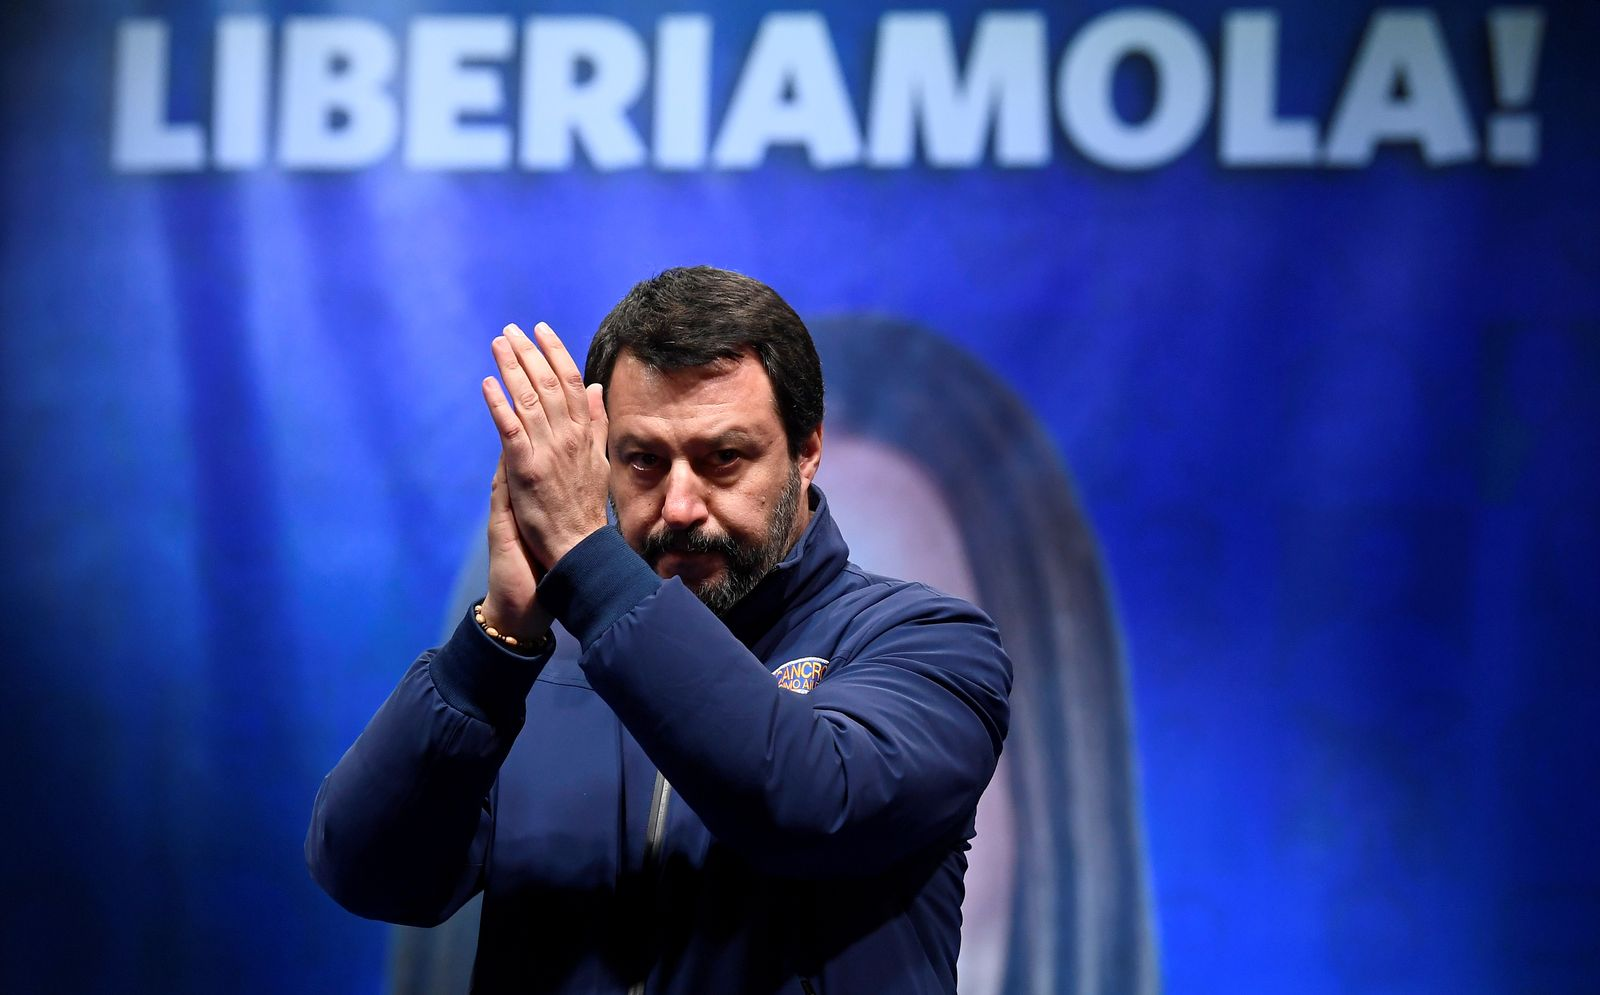 Leader of Italy's far-right League party Matteo Salvini applauds on stage during a rally ahead of a regional election in Emilia-Romagna, in Ravenna